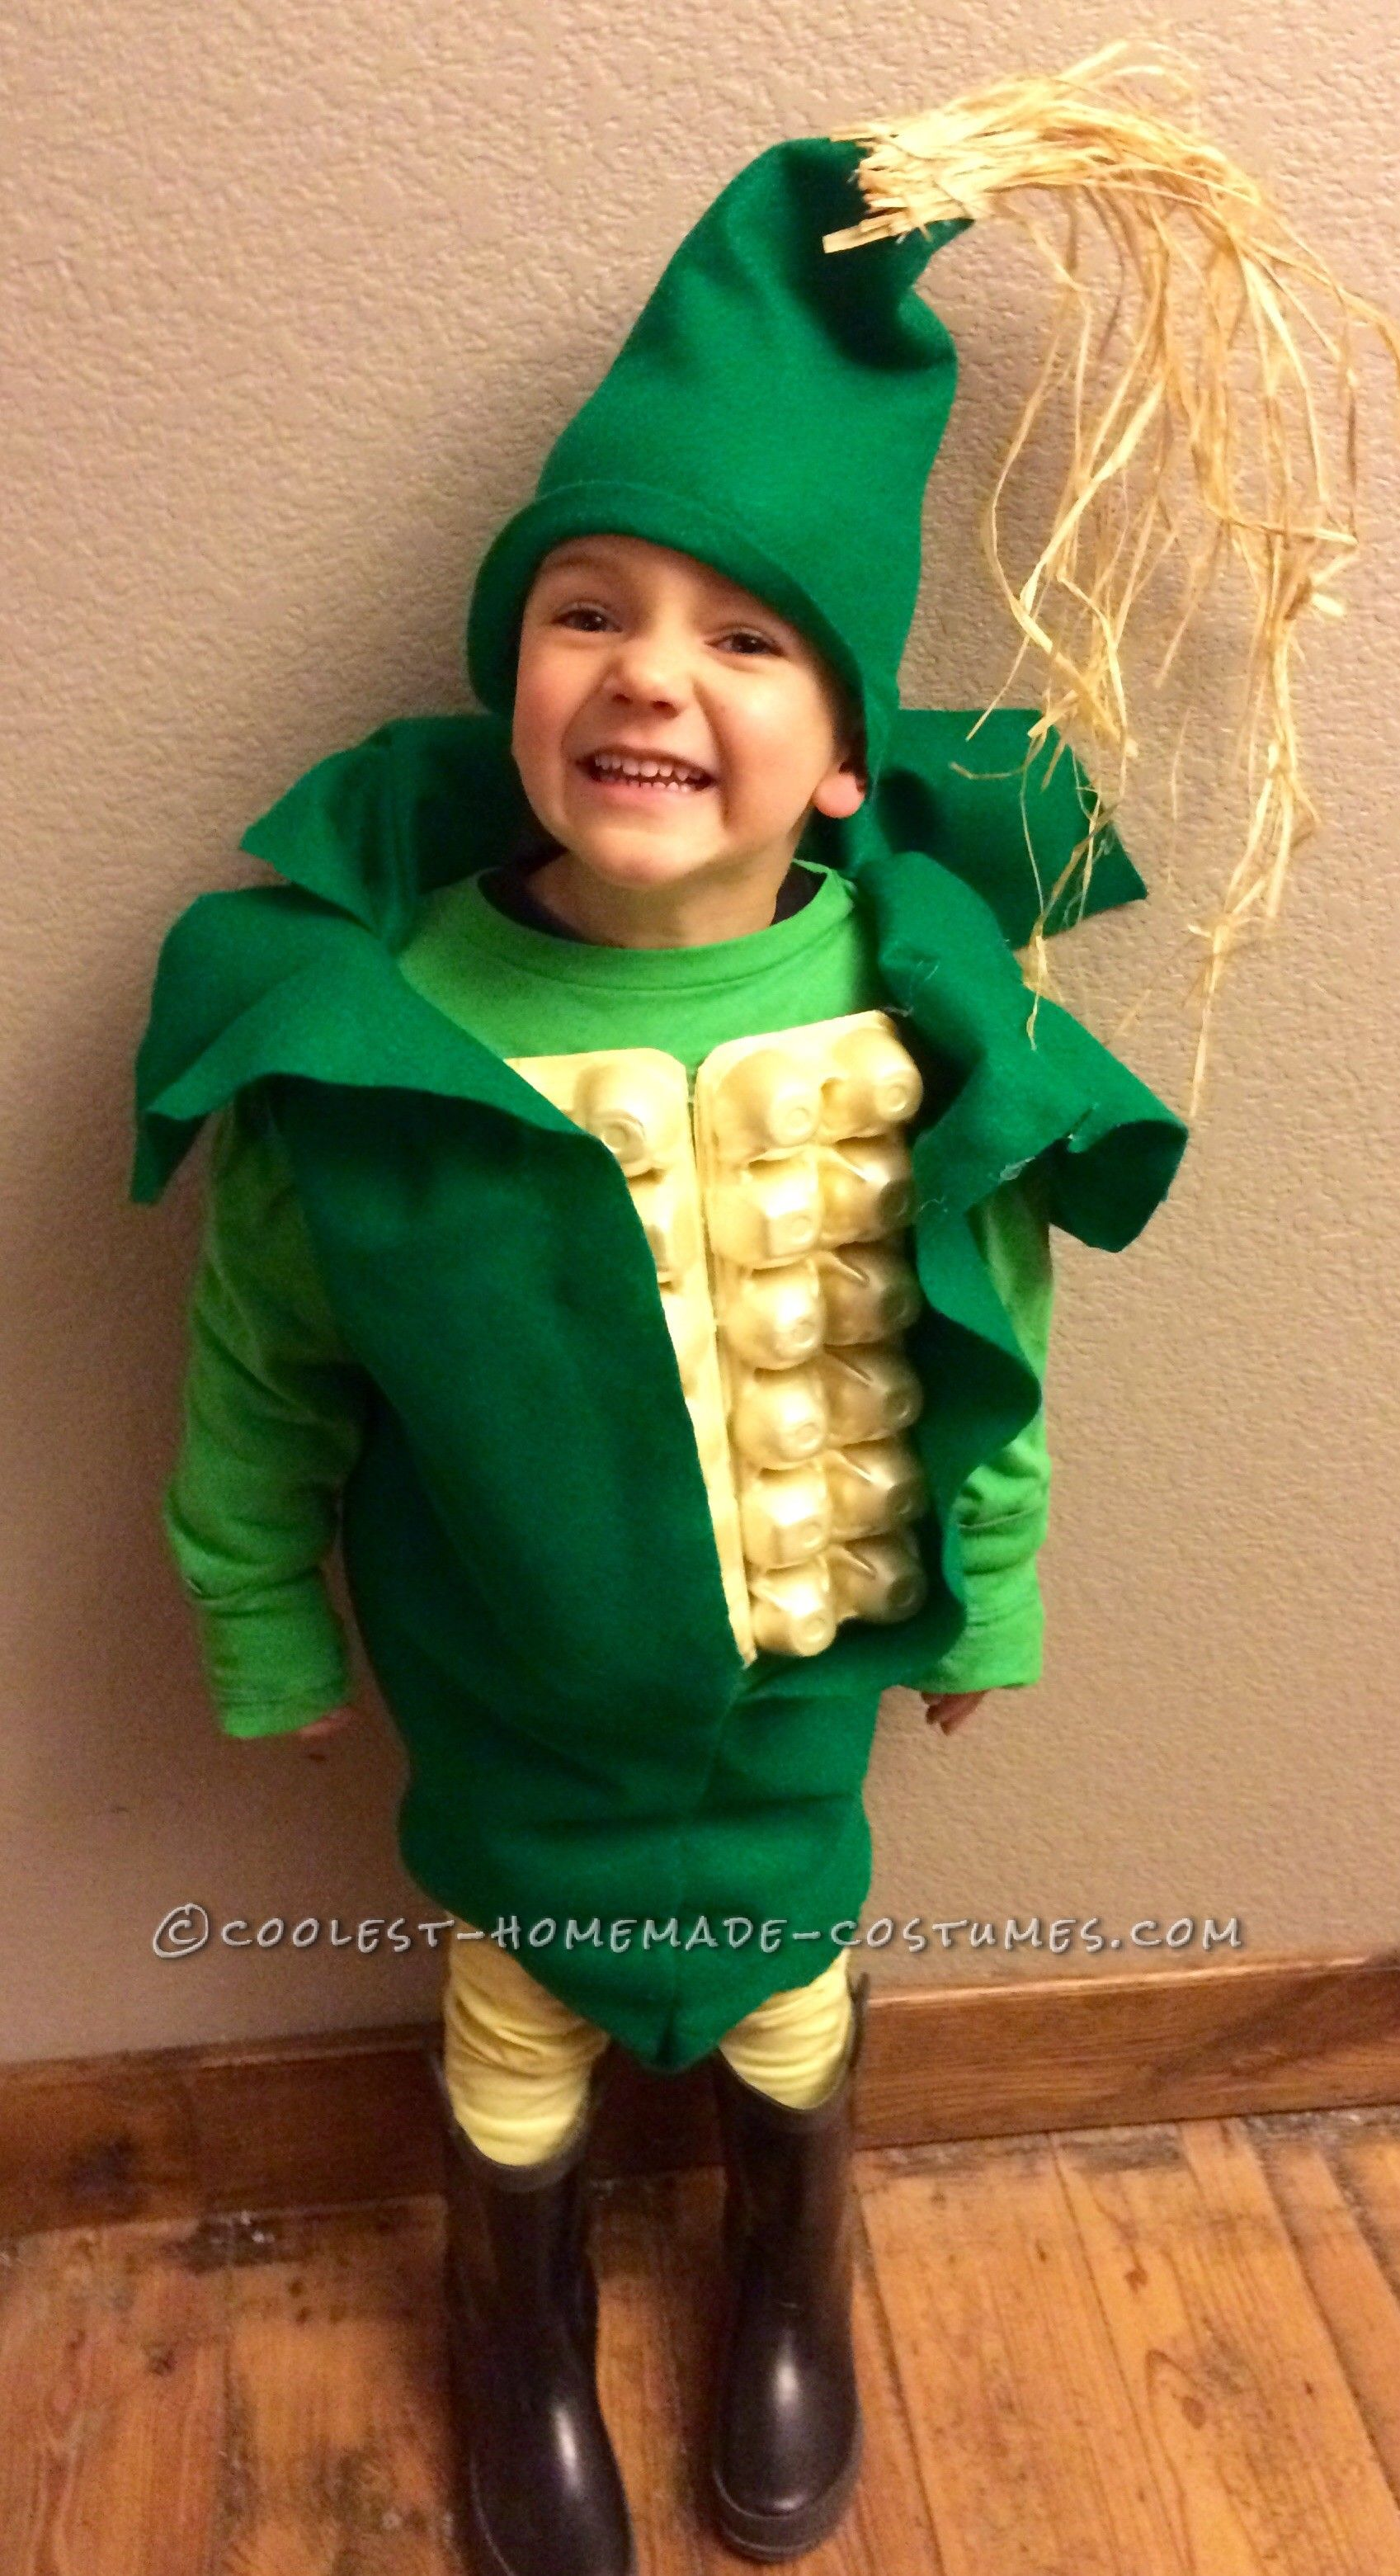 corny costume for a kid | coolest homemade costumes | pinterest